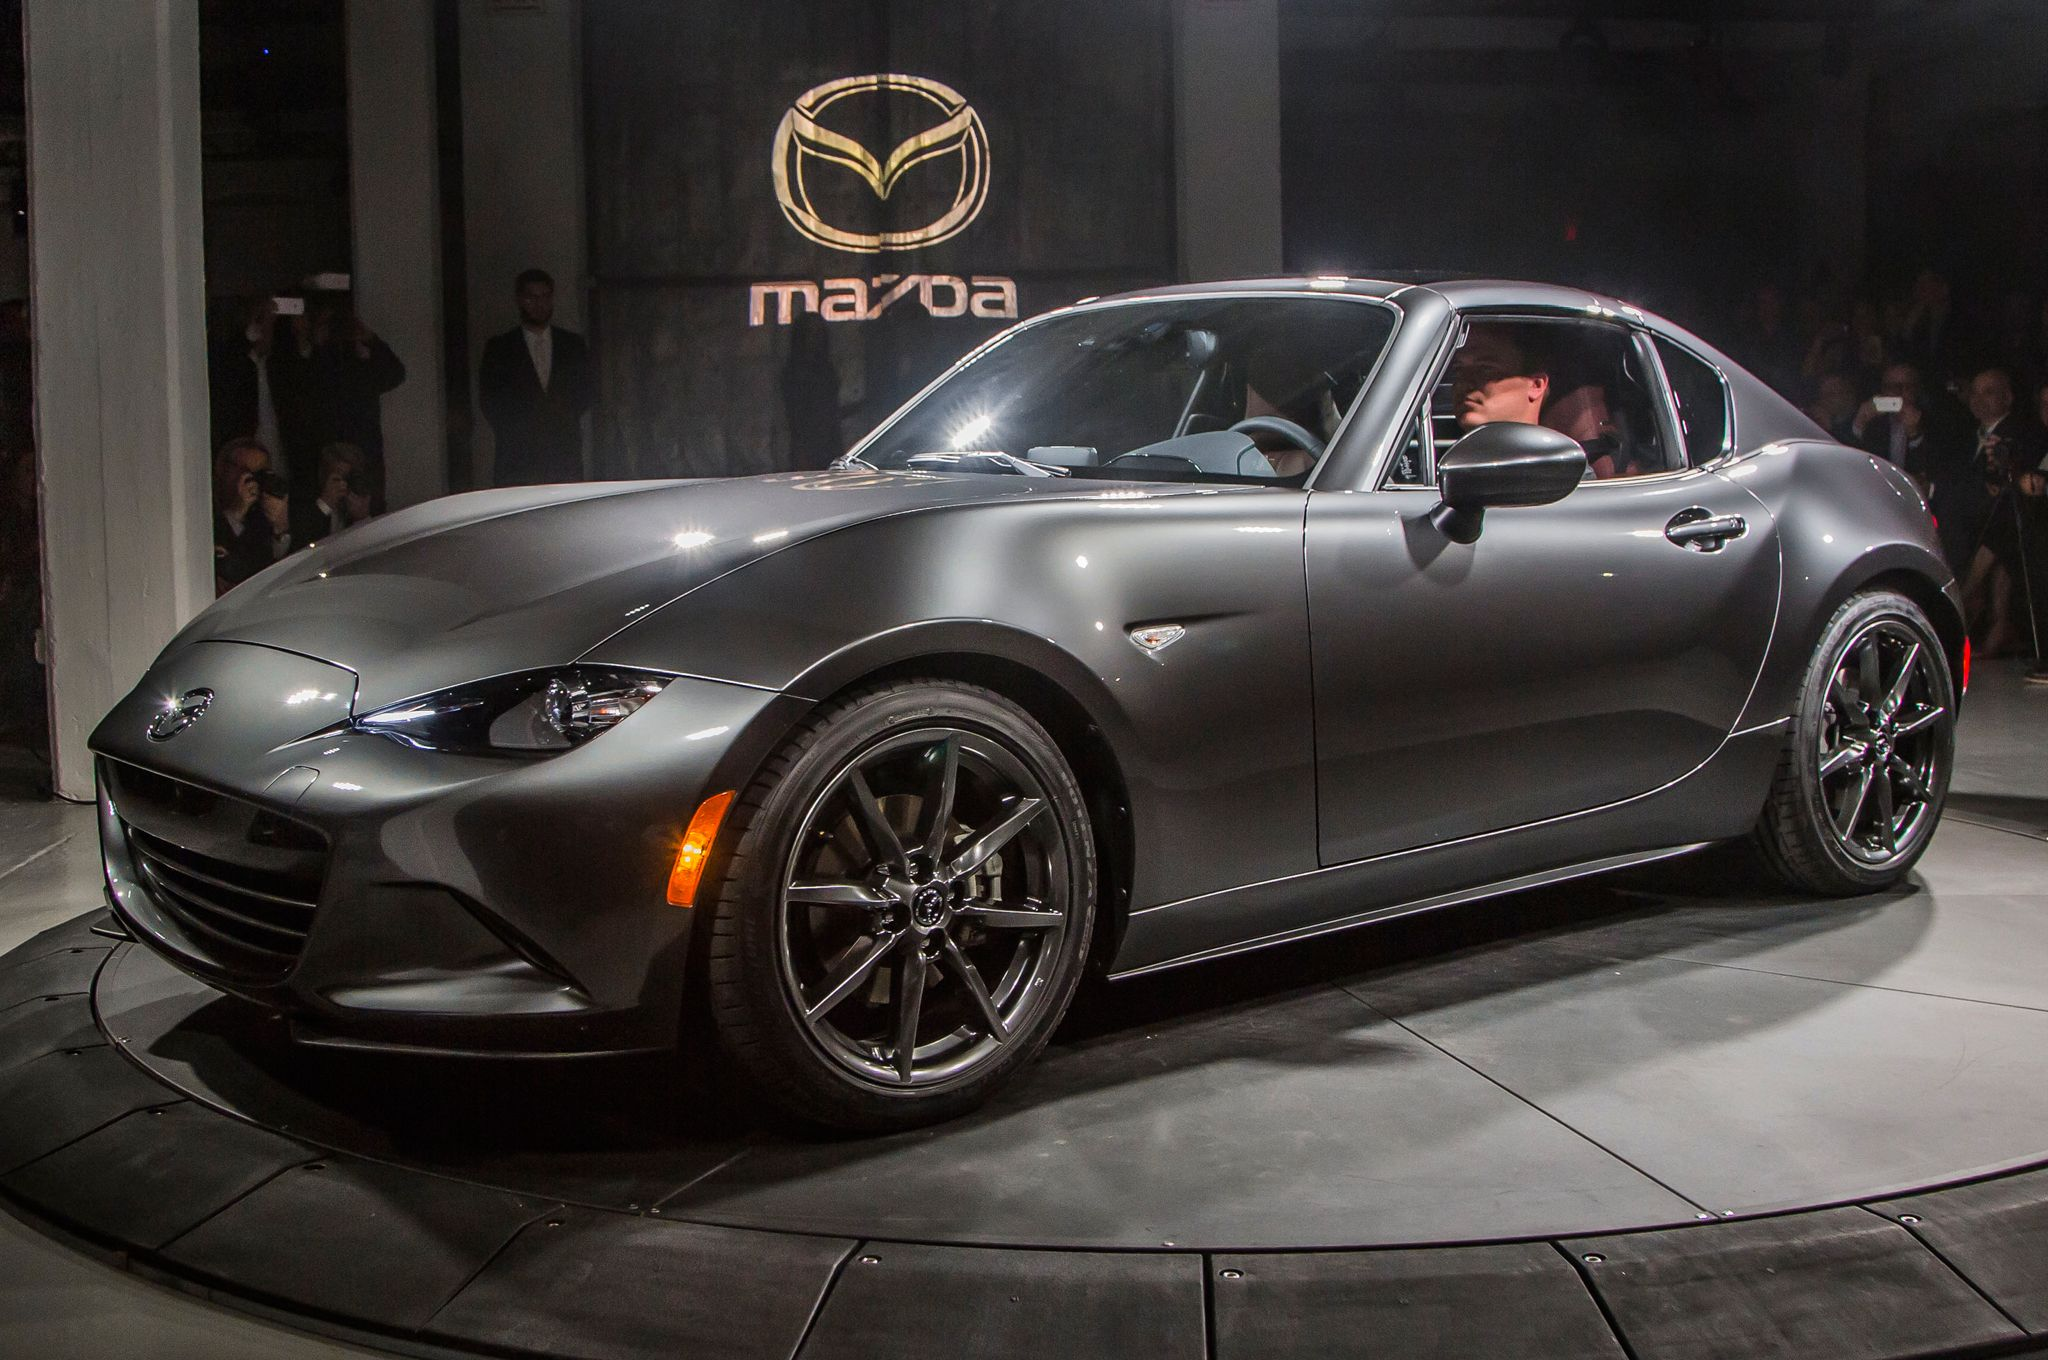 Mazda Mx5 Debuts In New York With Hard Top Automotive